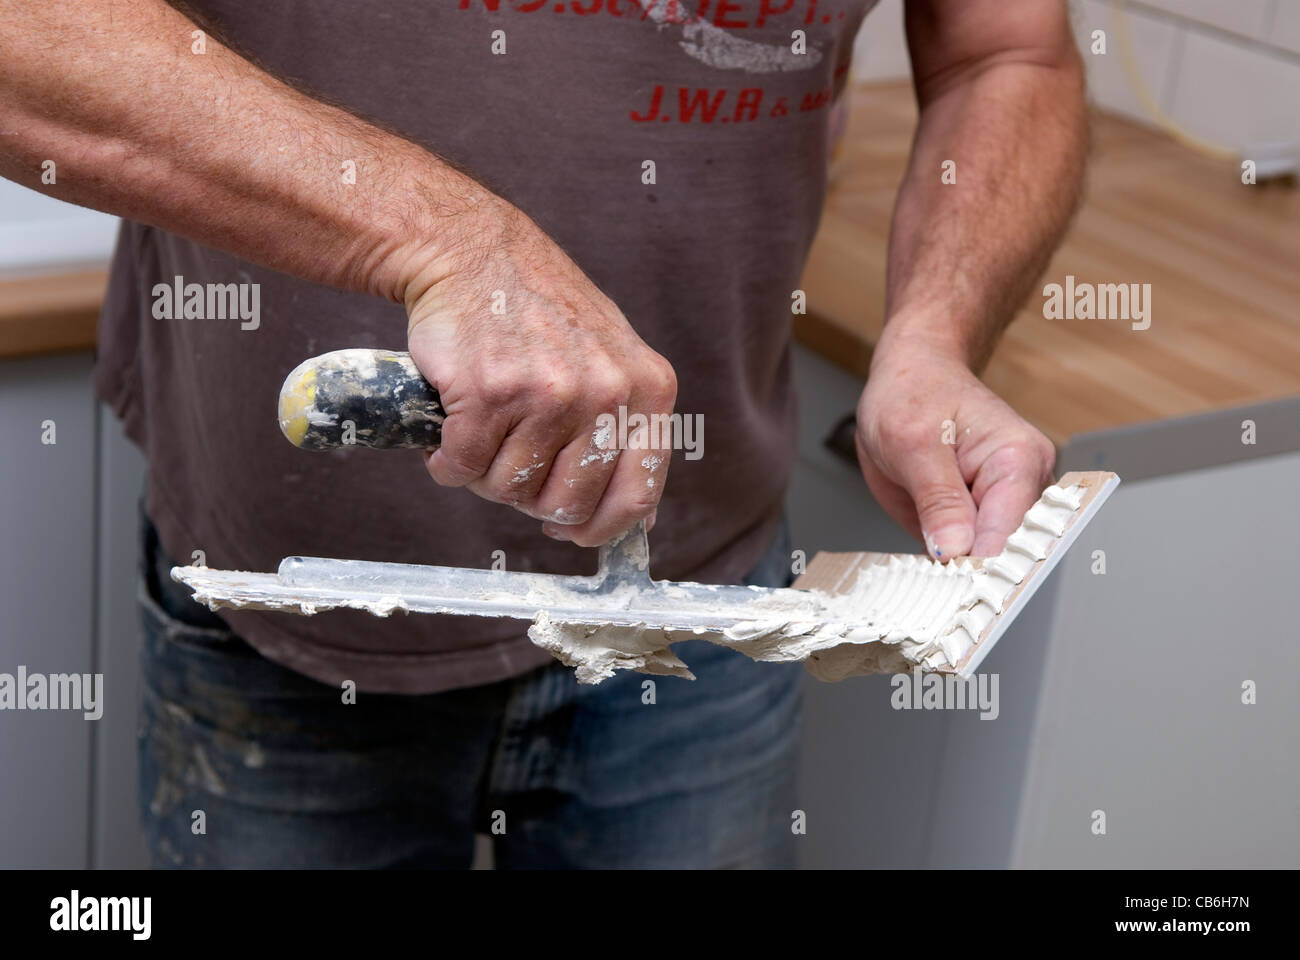 tiling adhesive Stock Photos & tiling adhesive Stock Images - Alamy